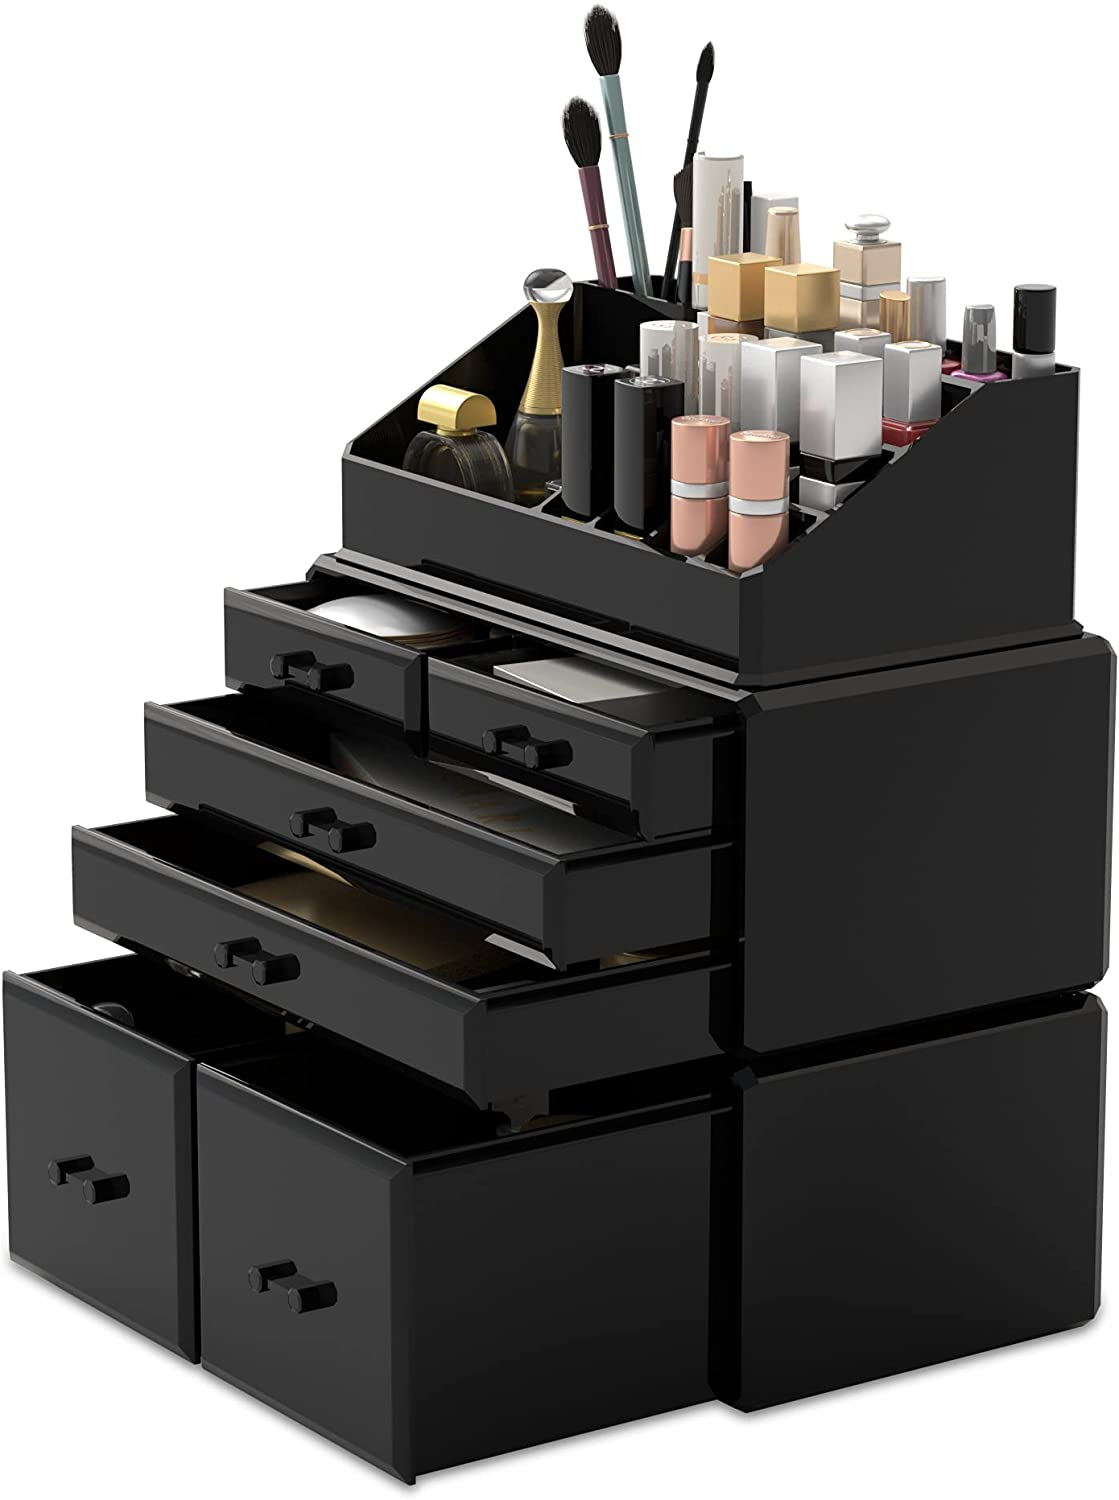 Readaeer Portland Mall Makeup Organizer 3 Pieces Cosmetic with Case 6 Max 83% OFF Storage